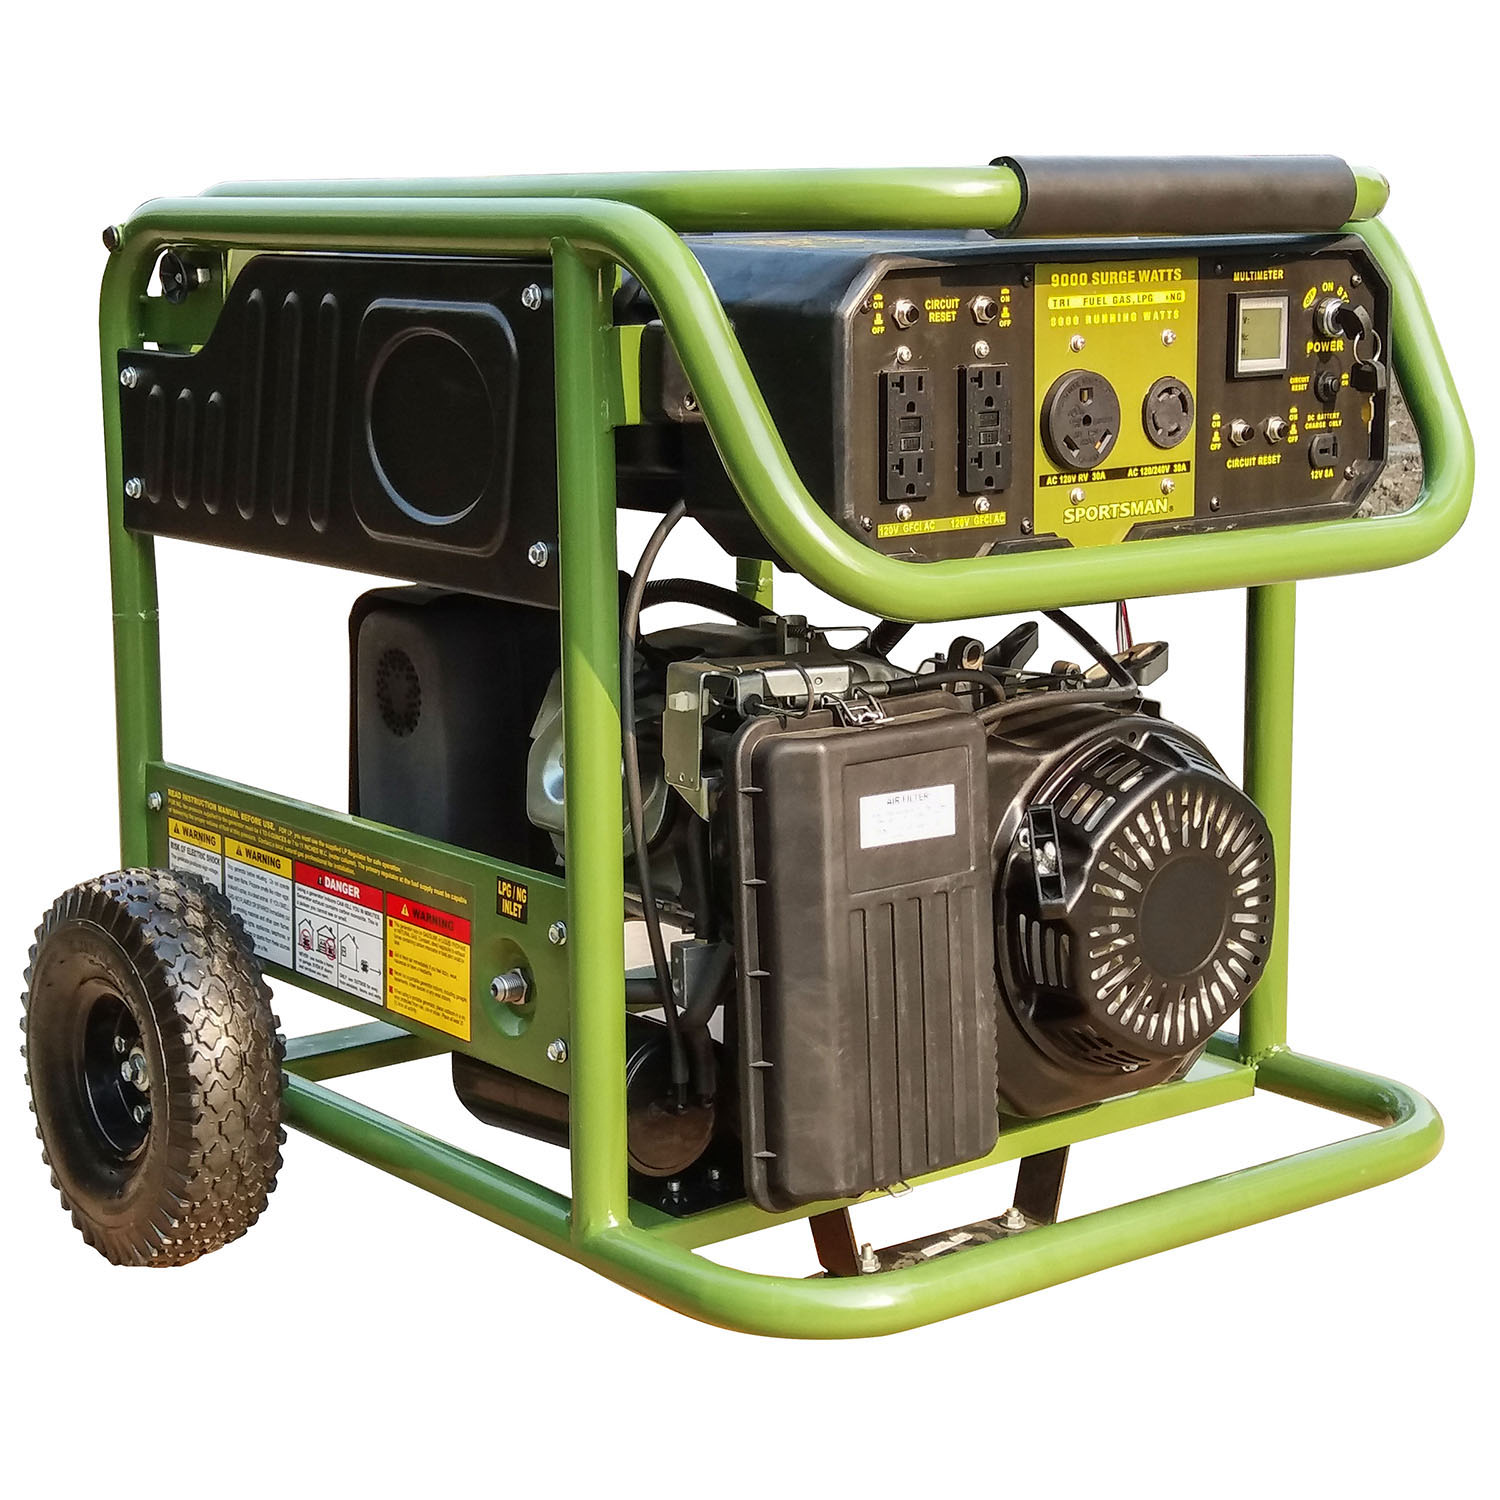 Generator Wattage Worksheet : Sportsman surge watt tri fuel generator